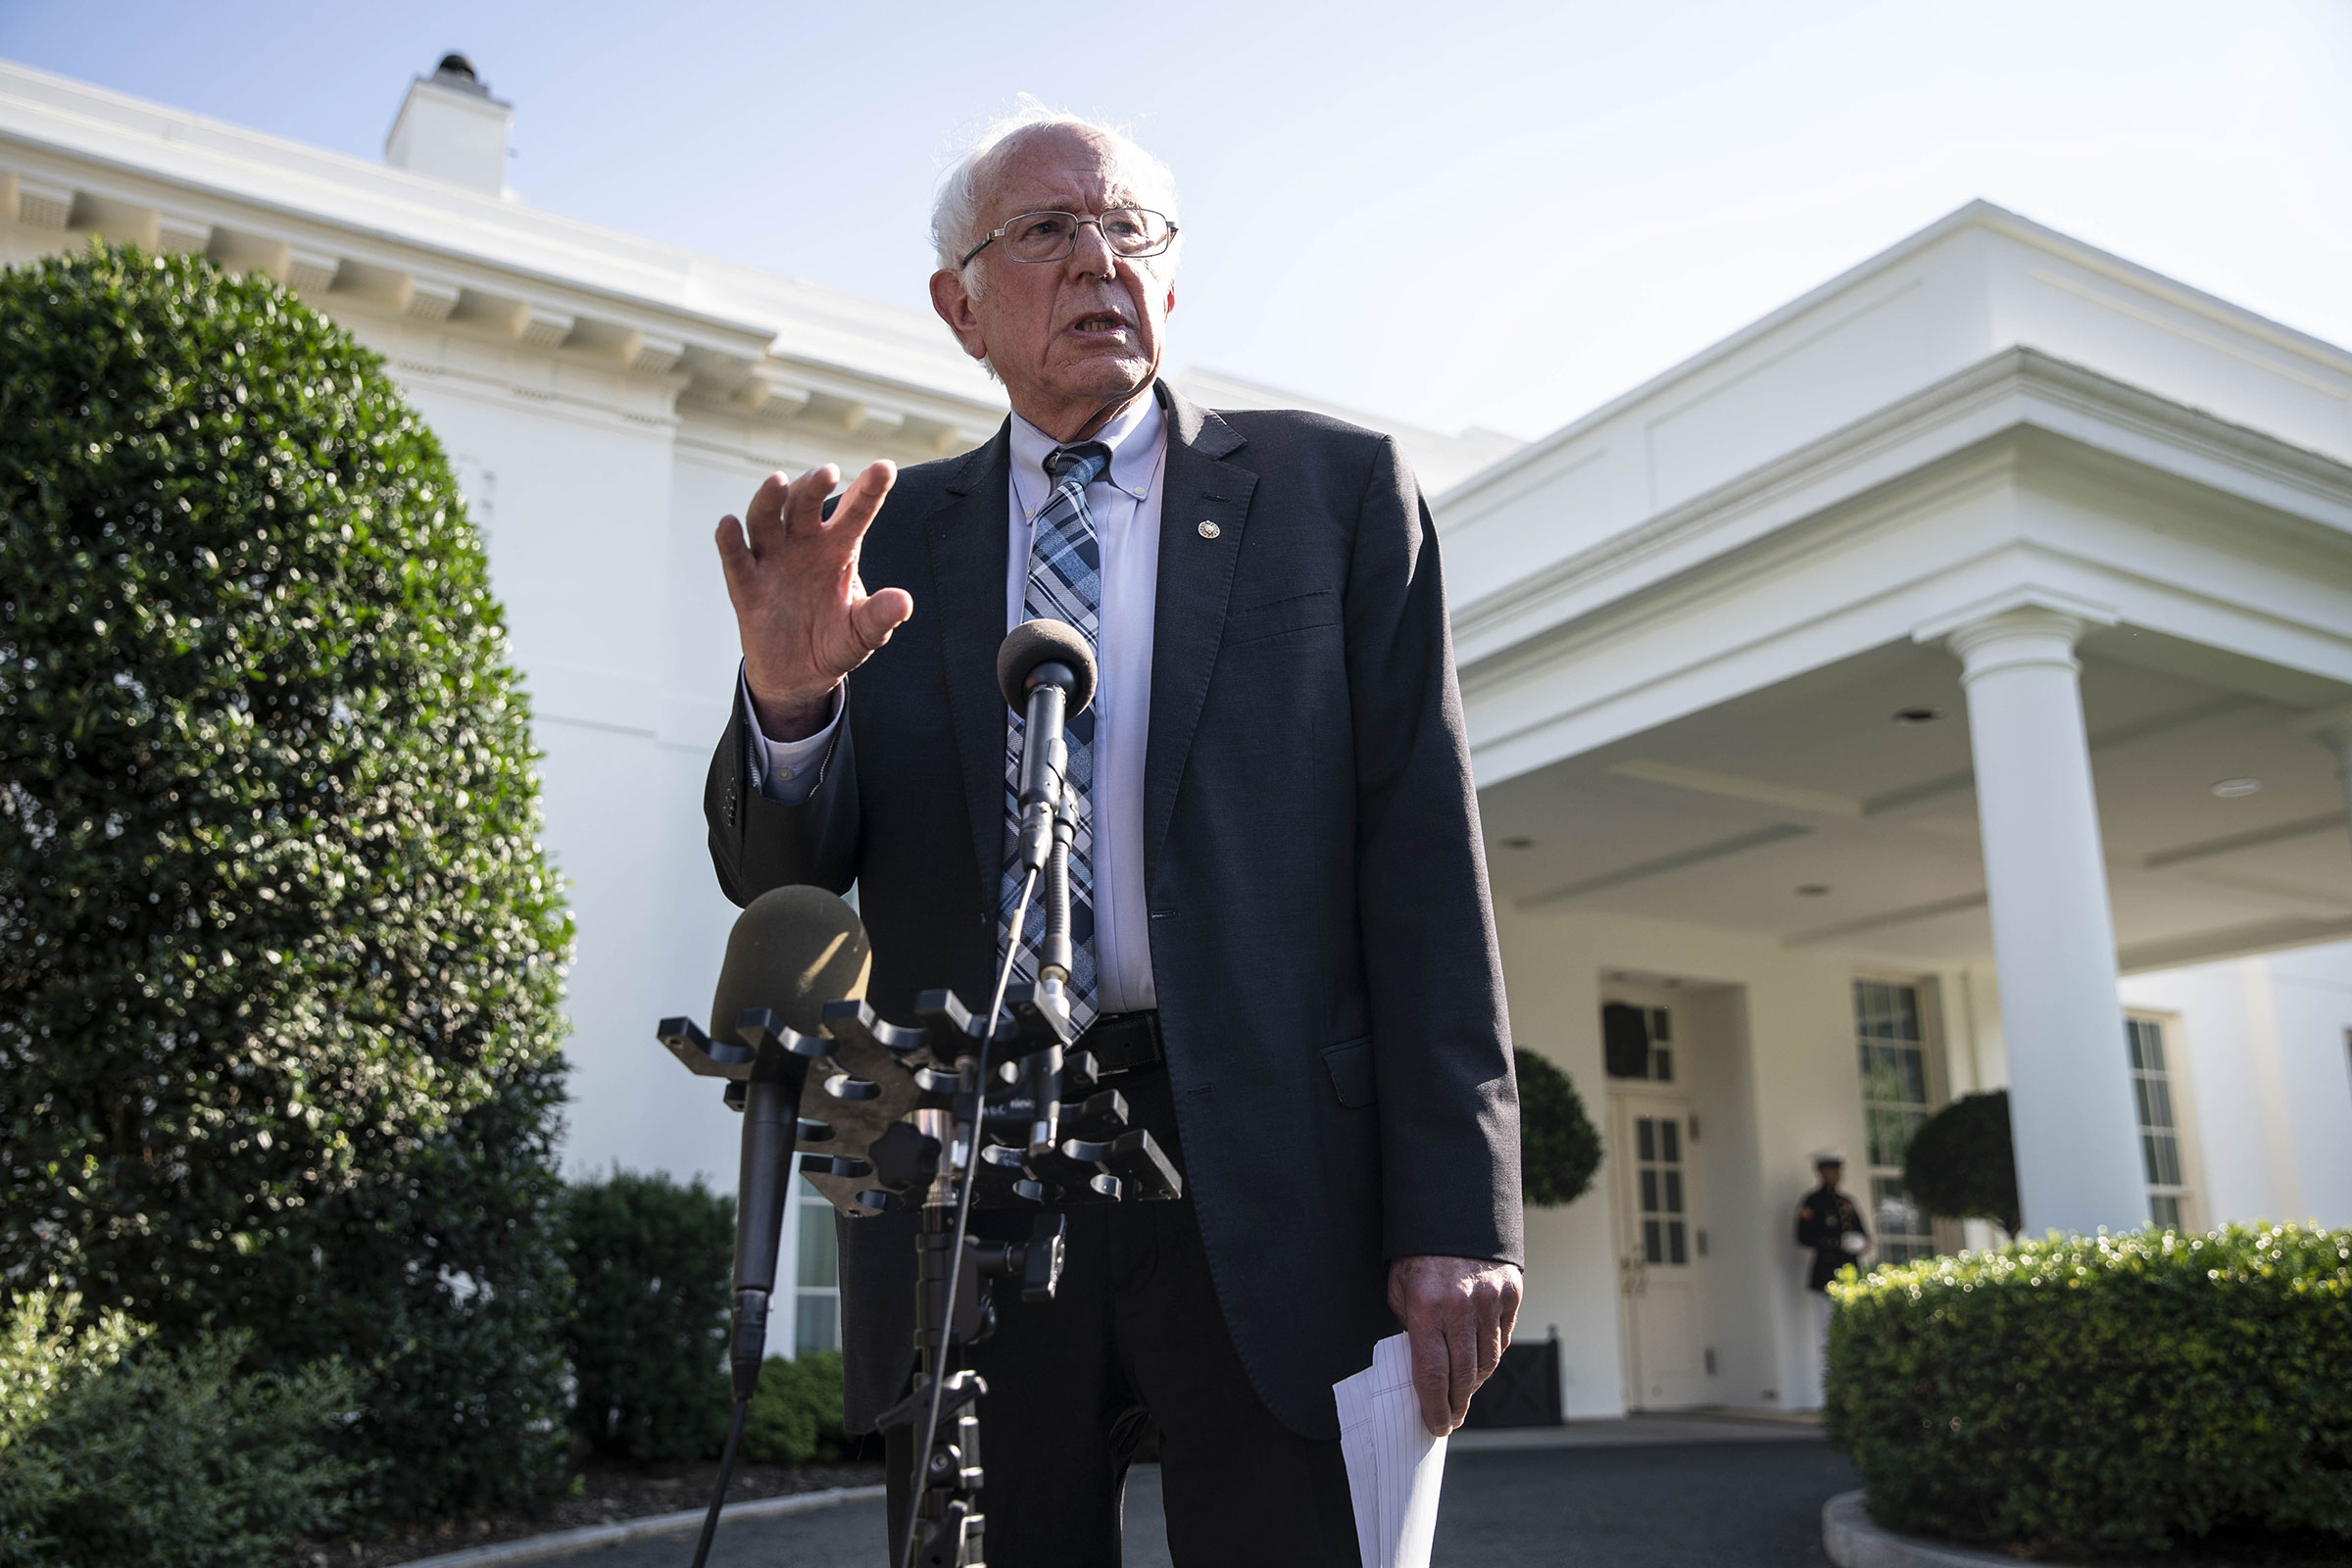 Sanders speaks to members of the media following a meeting with President Biden at the White House on July 12.